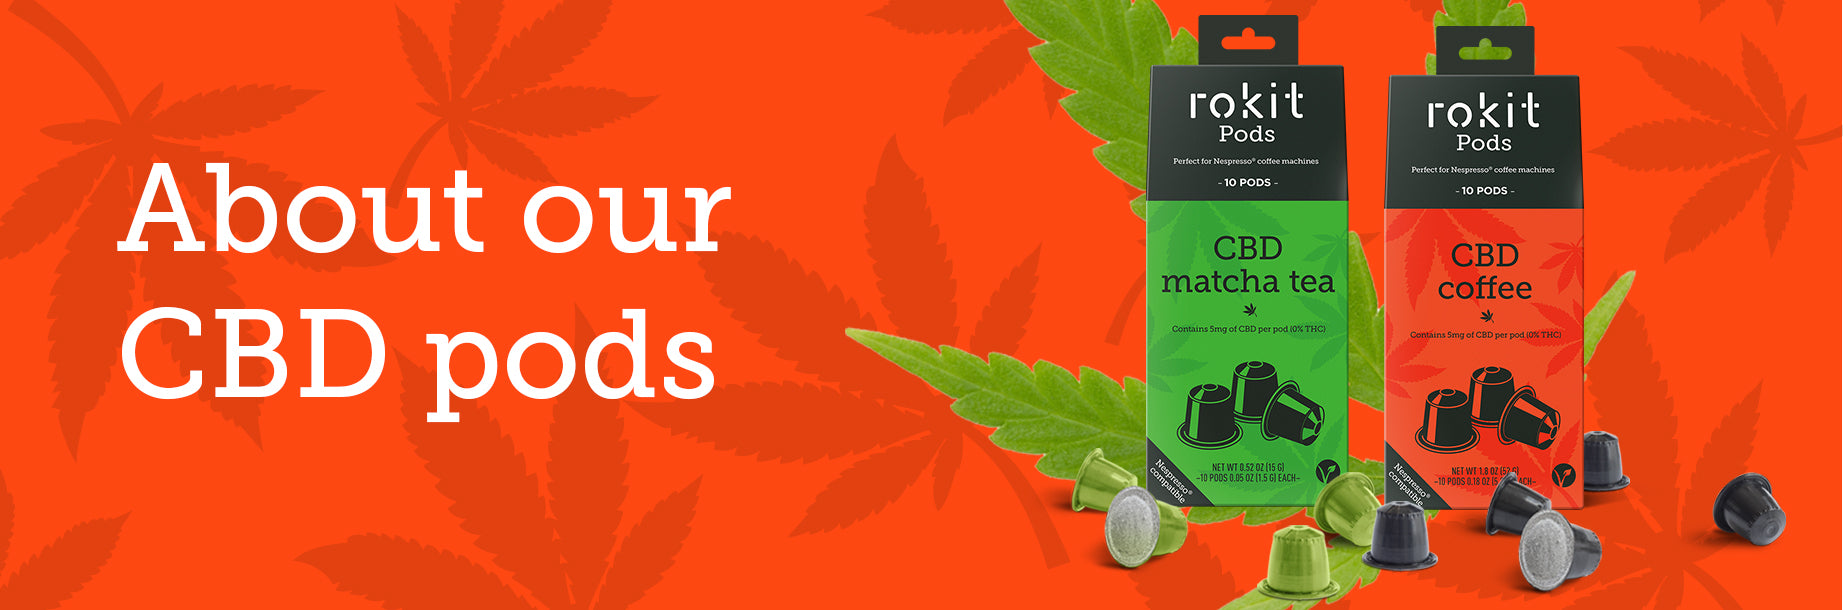 About our CBD pods - CBD Rokit Pods information